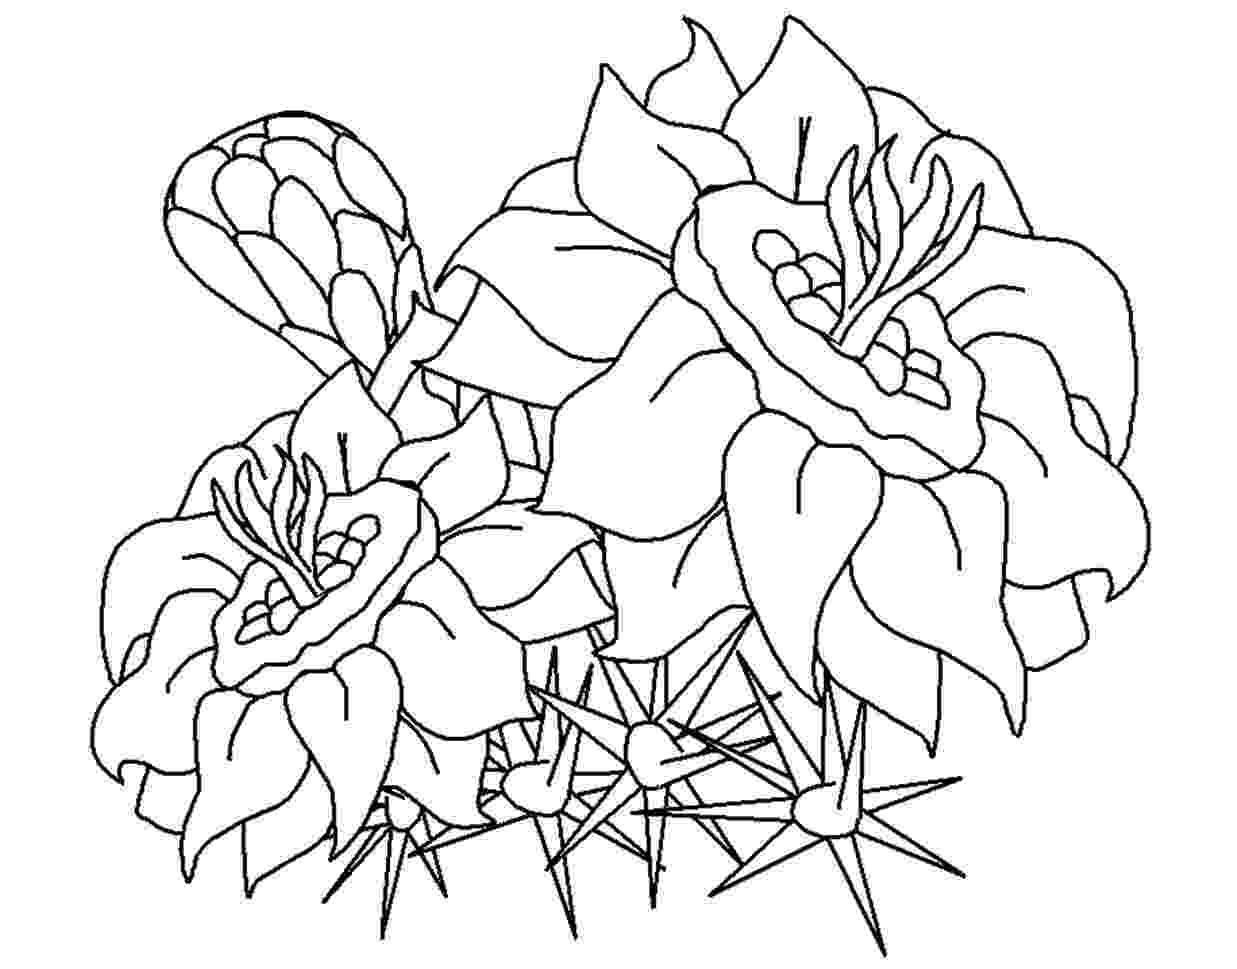 free printable coloring pages of flowers free printable flower coloring pages for kids best flowers free coloring printable pages of